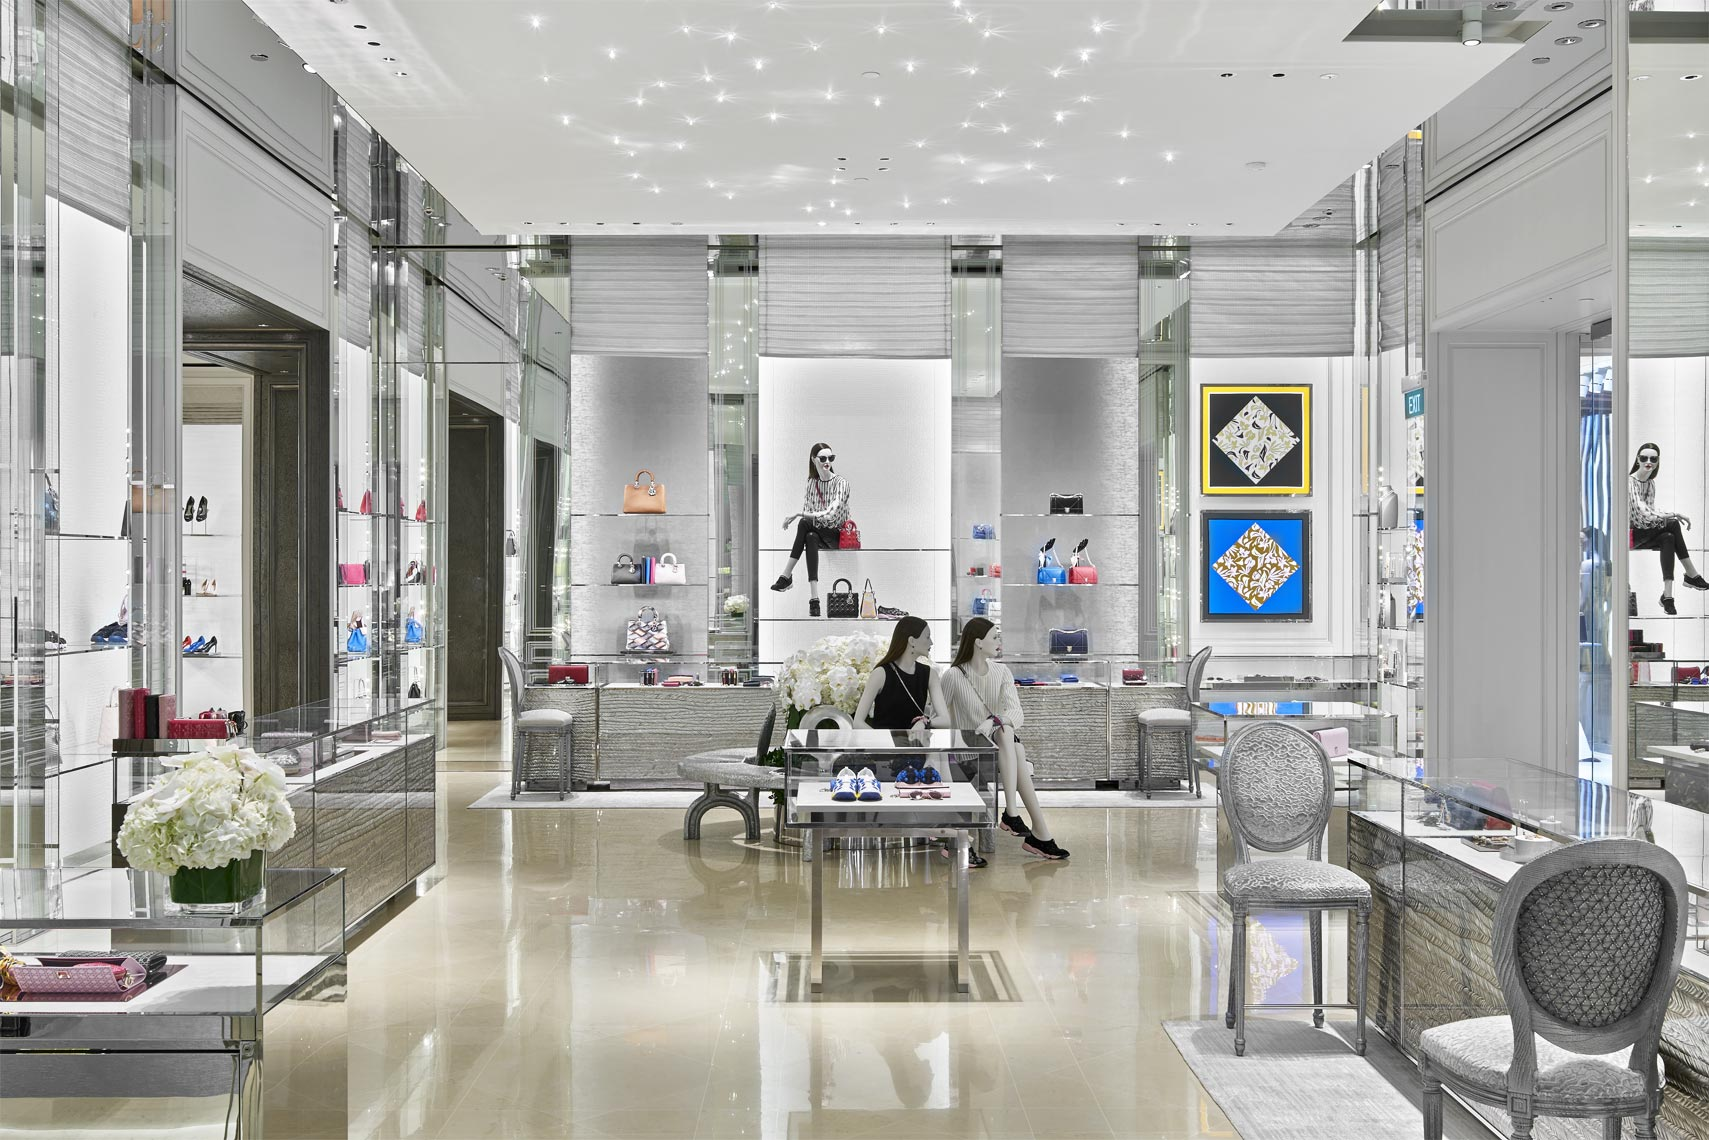 Silver leafed high chairs by Osmundo Studio for Peter Marino Architect for Dior